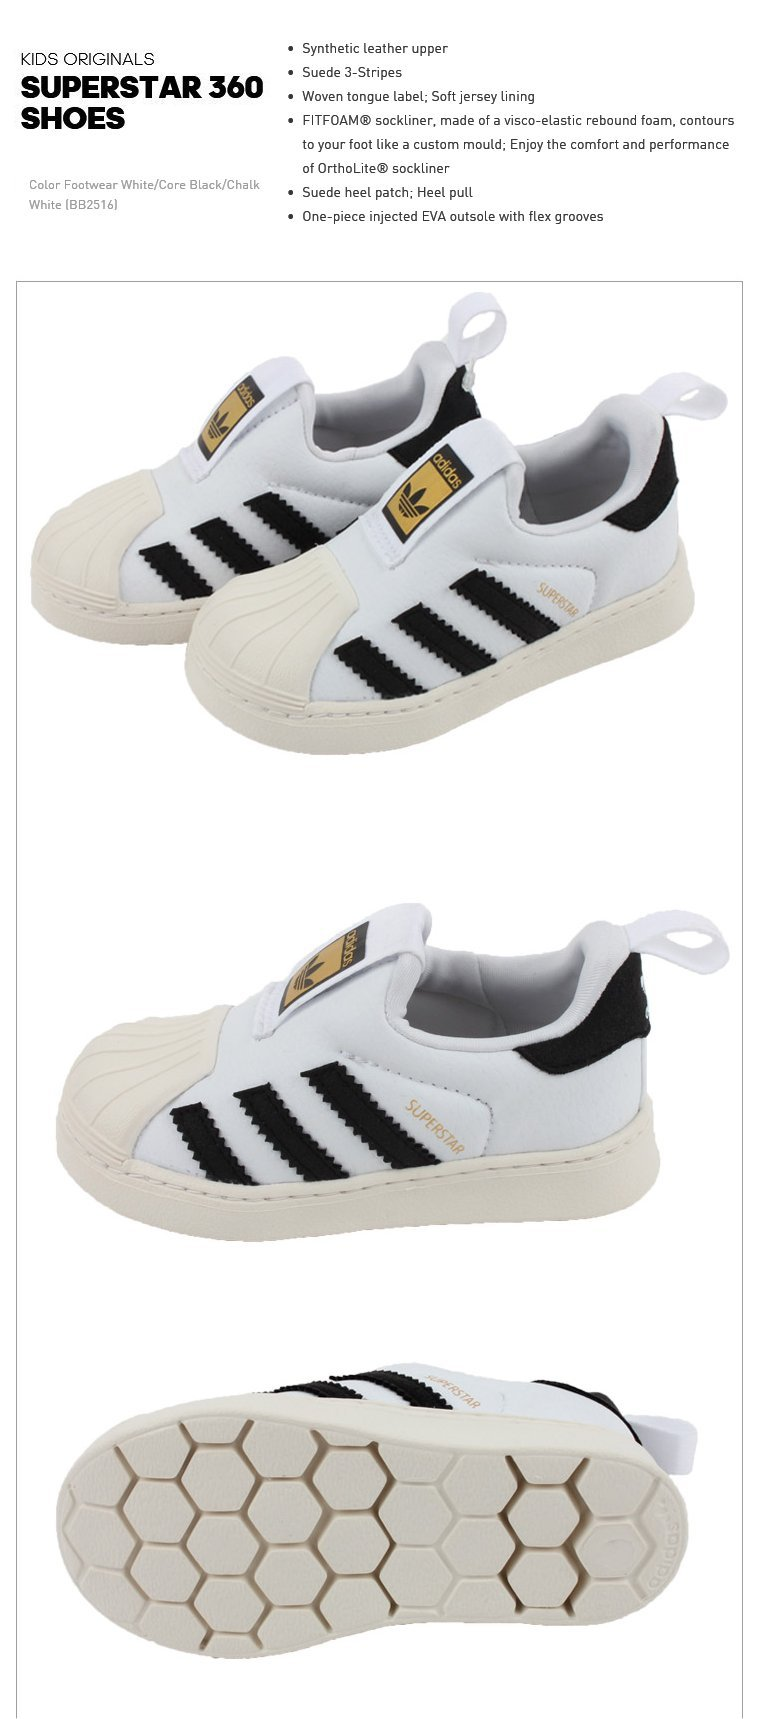 b06257c5b106 Specifications of Adidas Kids Toddler Originals Superstar 360 Shoes BB2516  White Black